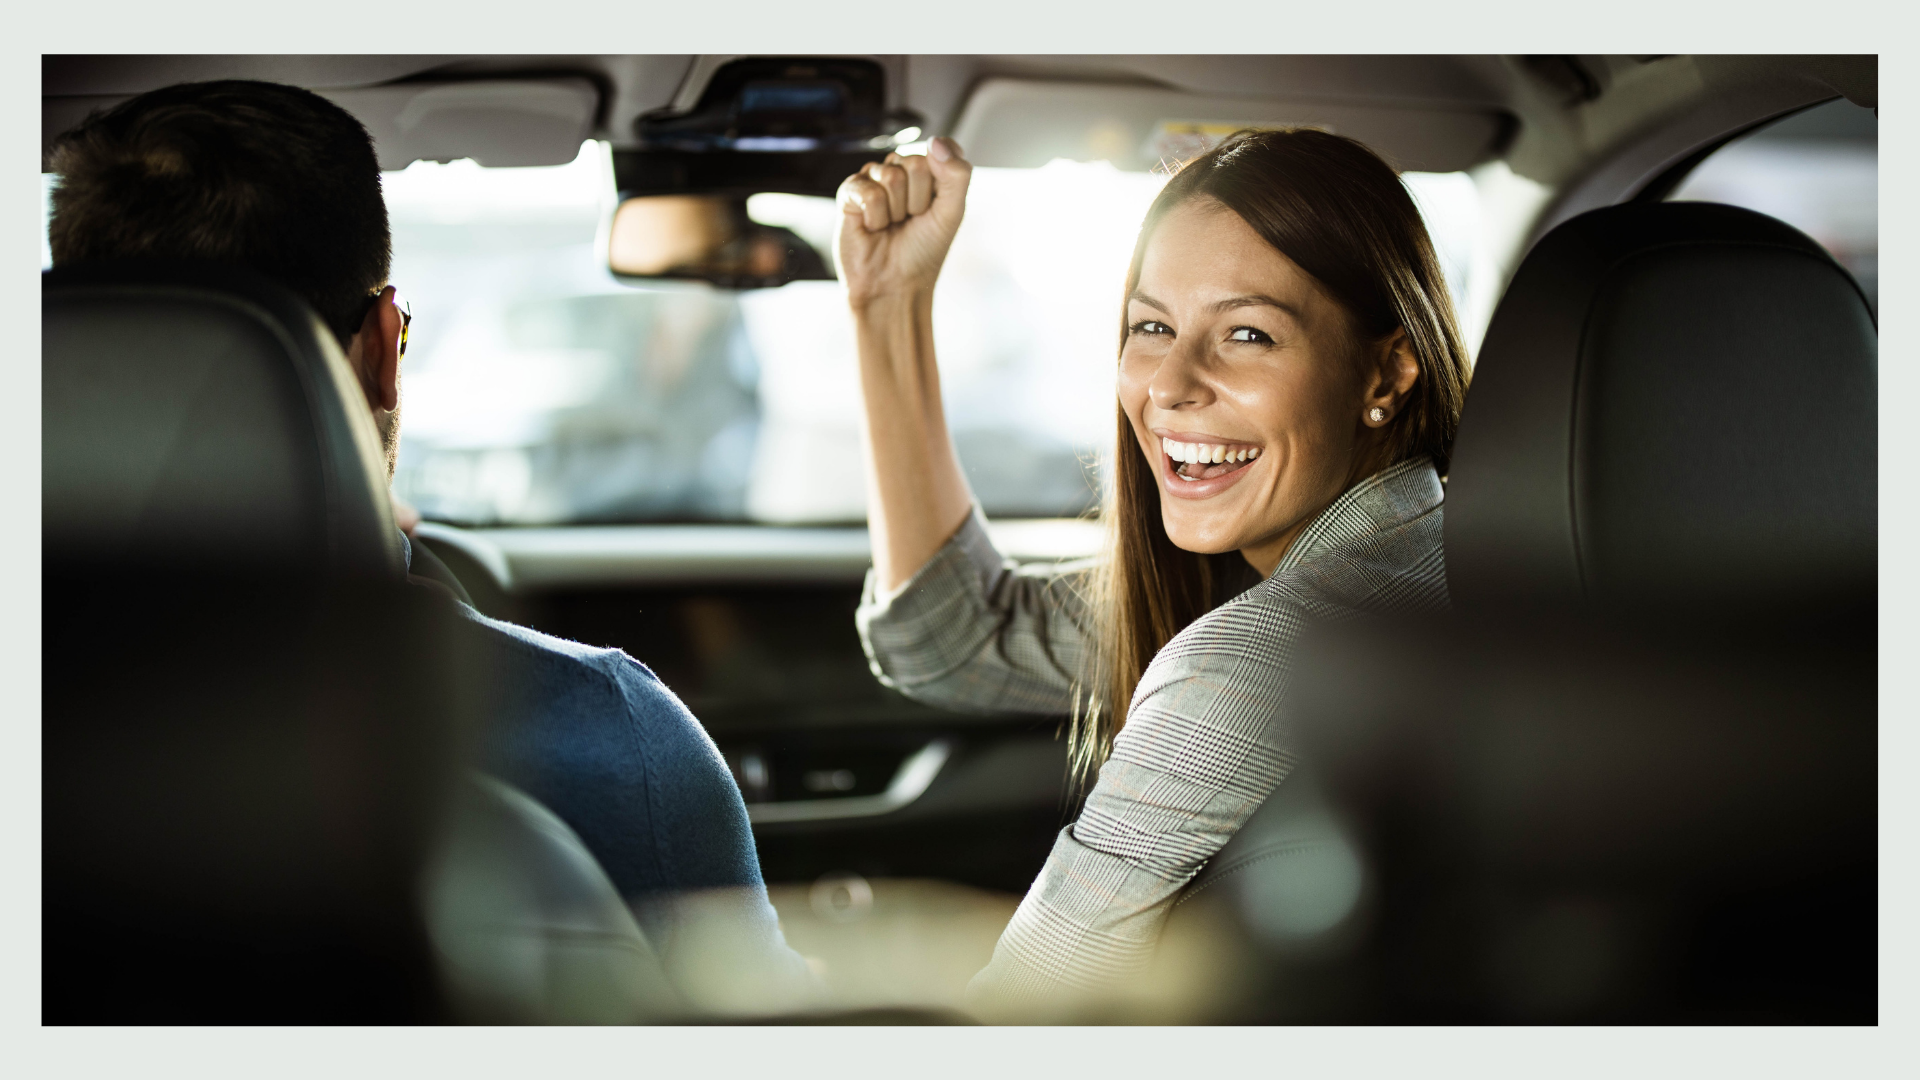 A woman happy in the car.